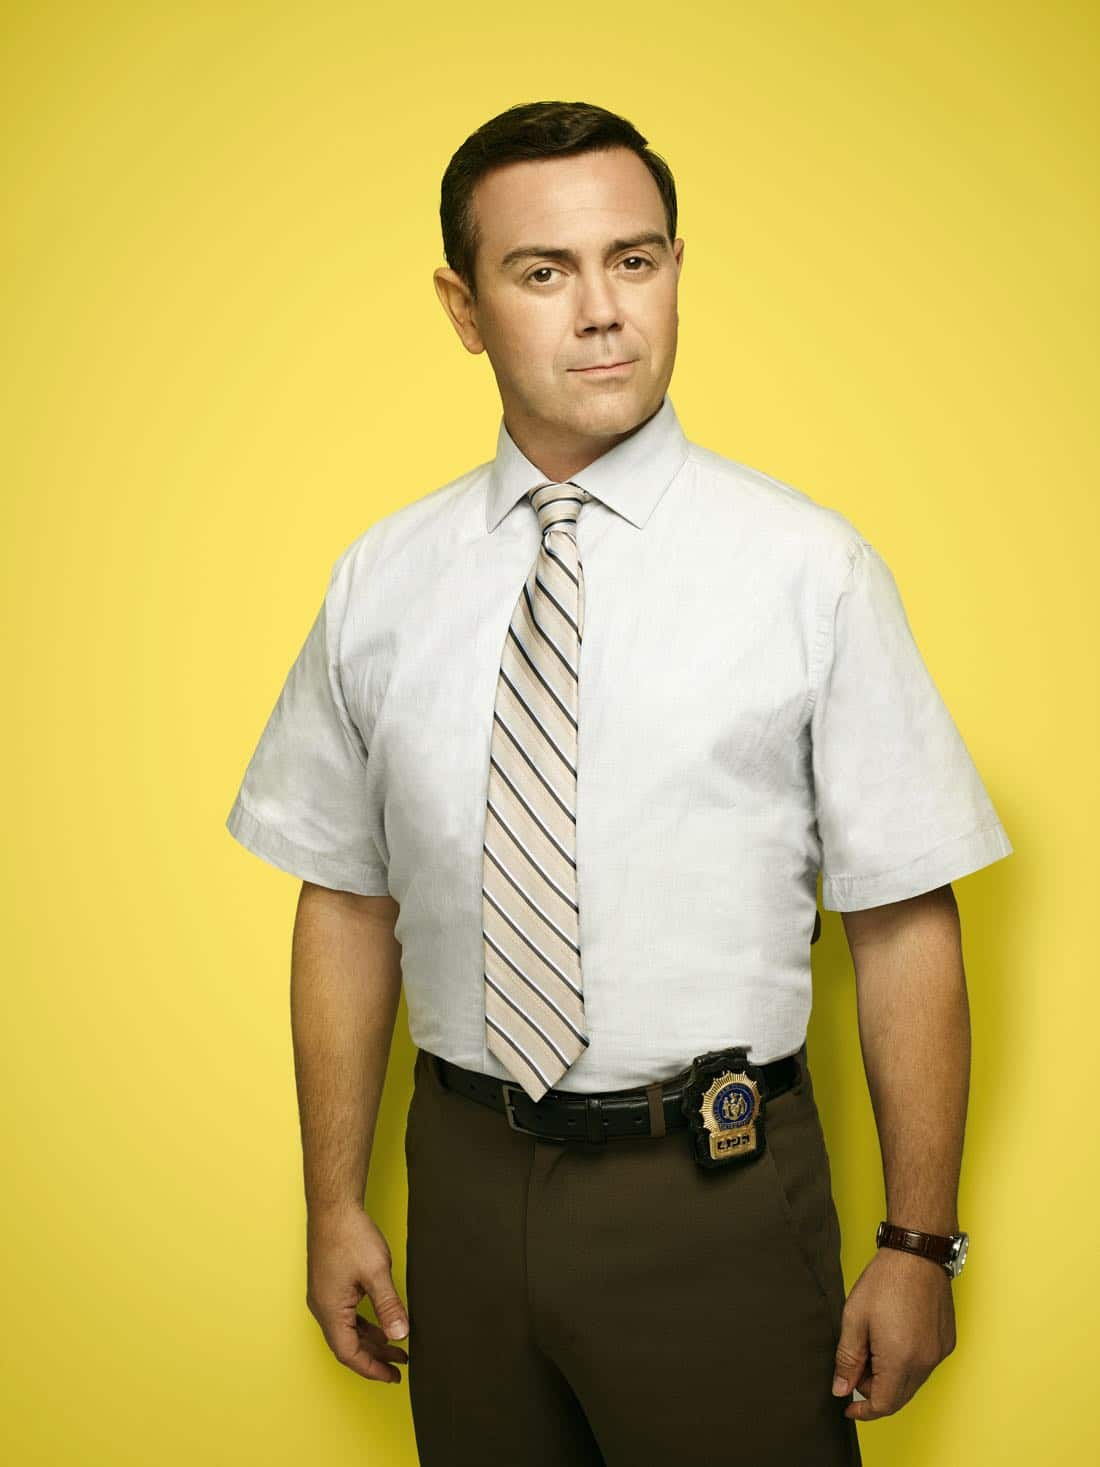 BROOKLYN NINE-NINE: Joe Lo Truglio as Detective Charles Boyle. BROOKLYN NINE-NINE Season Five premieres Tuesday, Sept. 26 (9:30-10:00 PM ET/PT) on FOX. ©2017 Fox Broadcasting Co. CR: Robert Trachtenberg/FOX